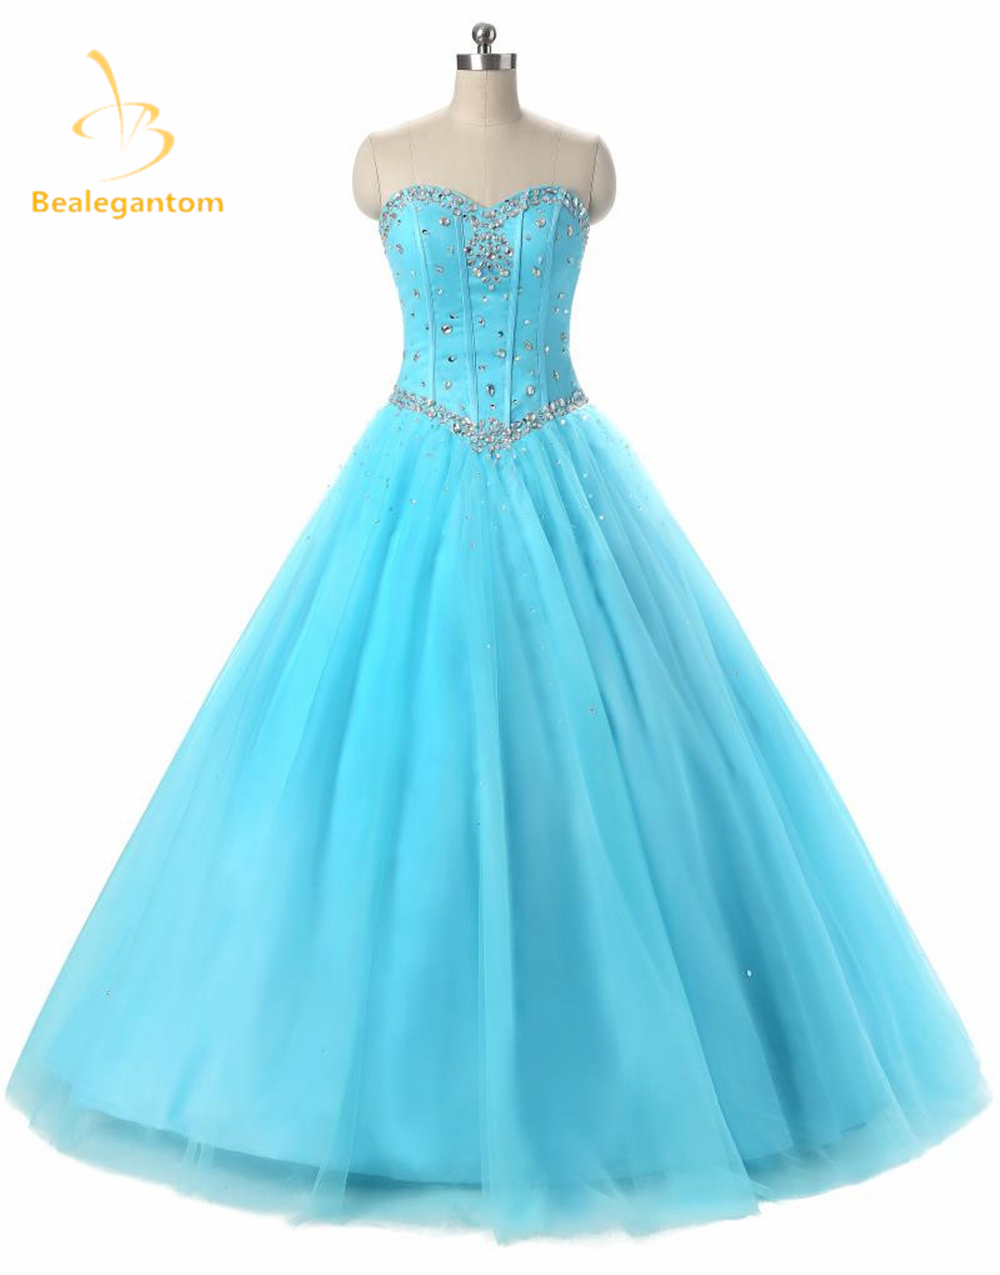 2019 New  Blue Orange Purple Quinceanera Dresses Ball Gowns Beads Dress For 15 Years Party Gowns Vestido De 15  Anos QA518